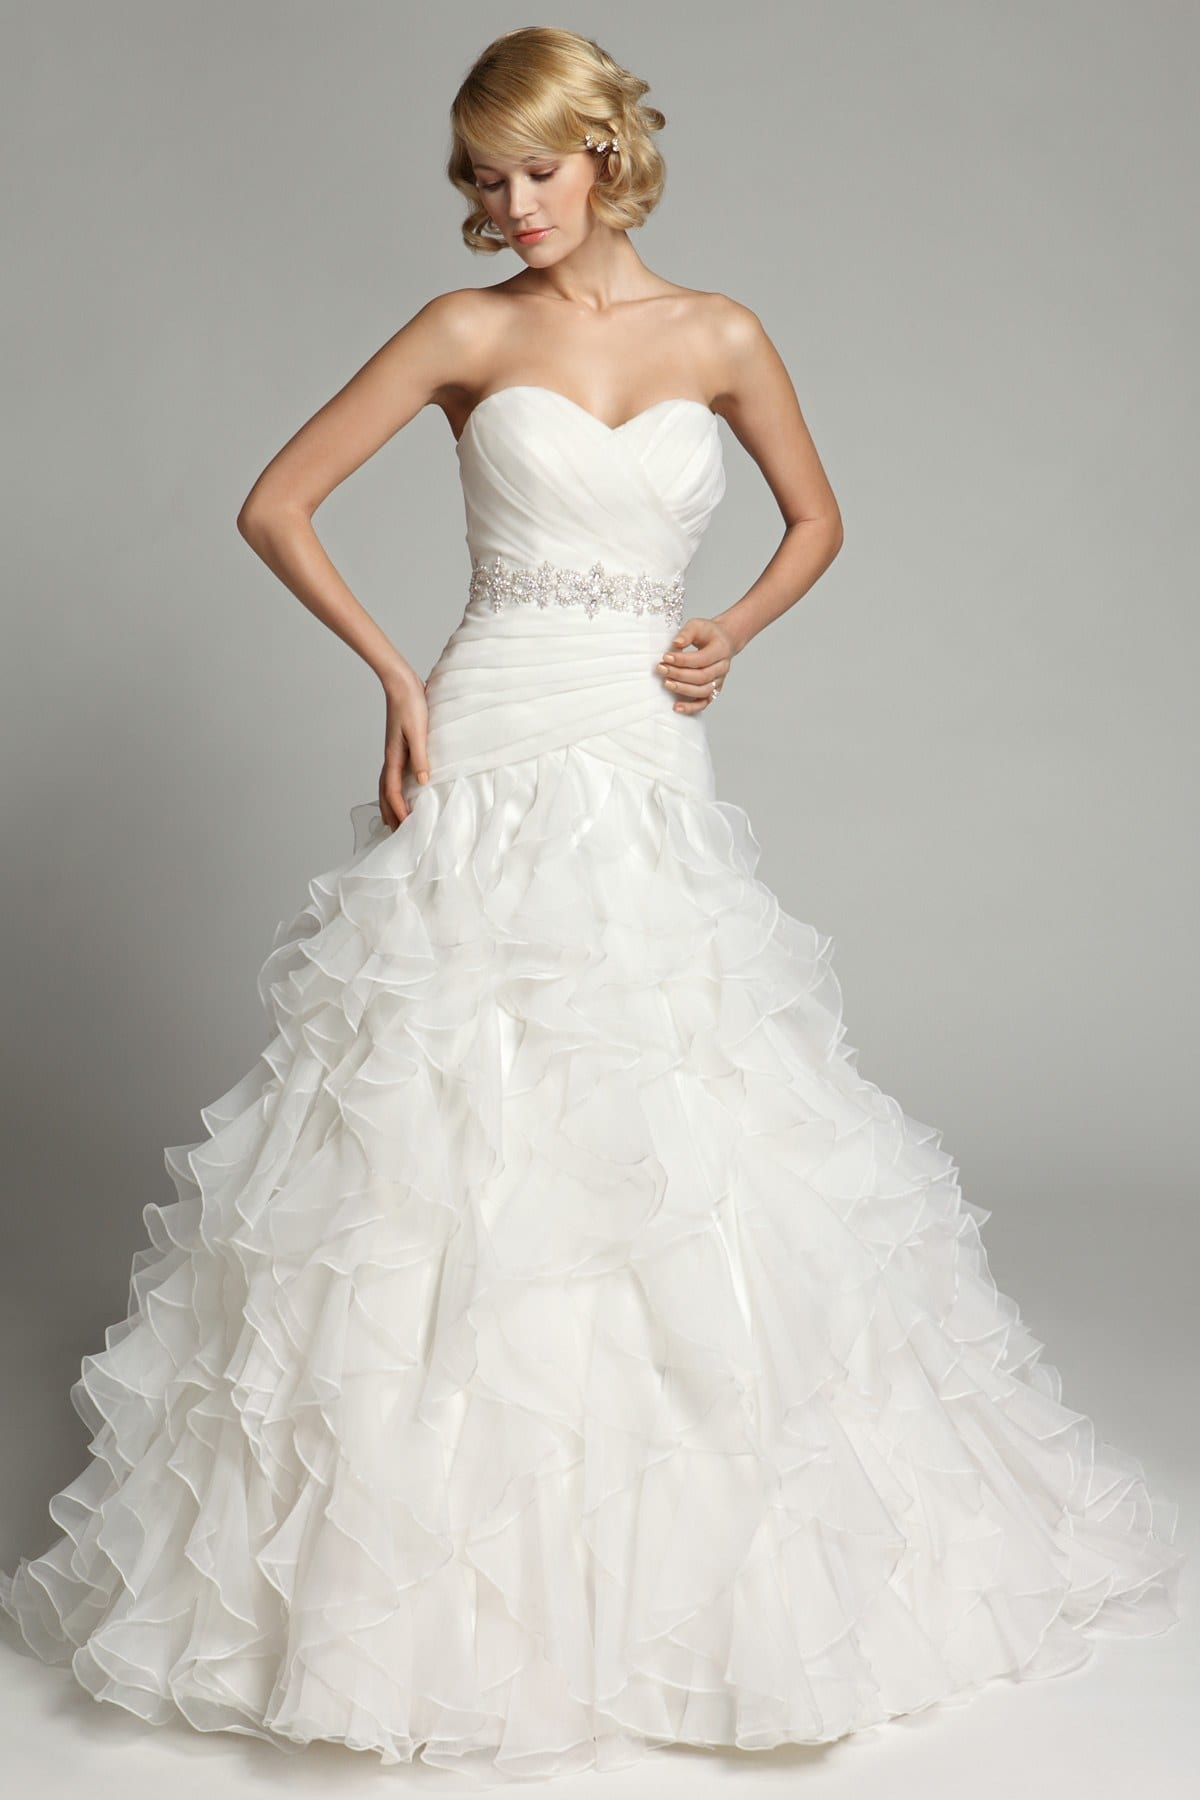 14 Elegant Wedding Gowns To Make Your Big Day Special